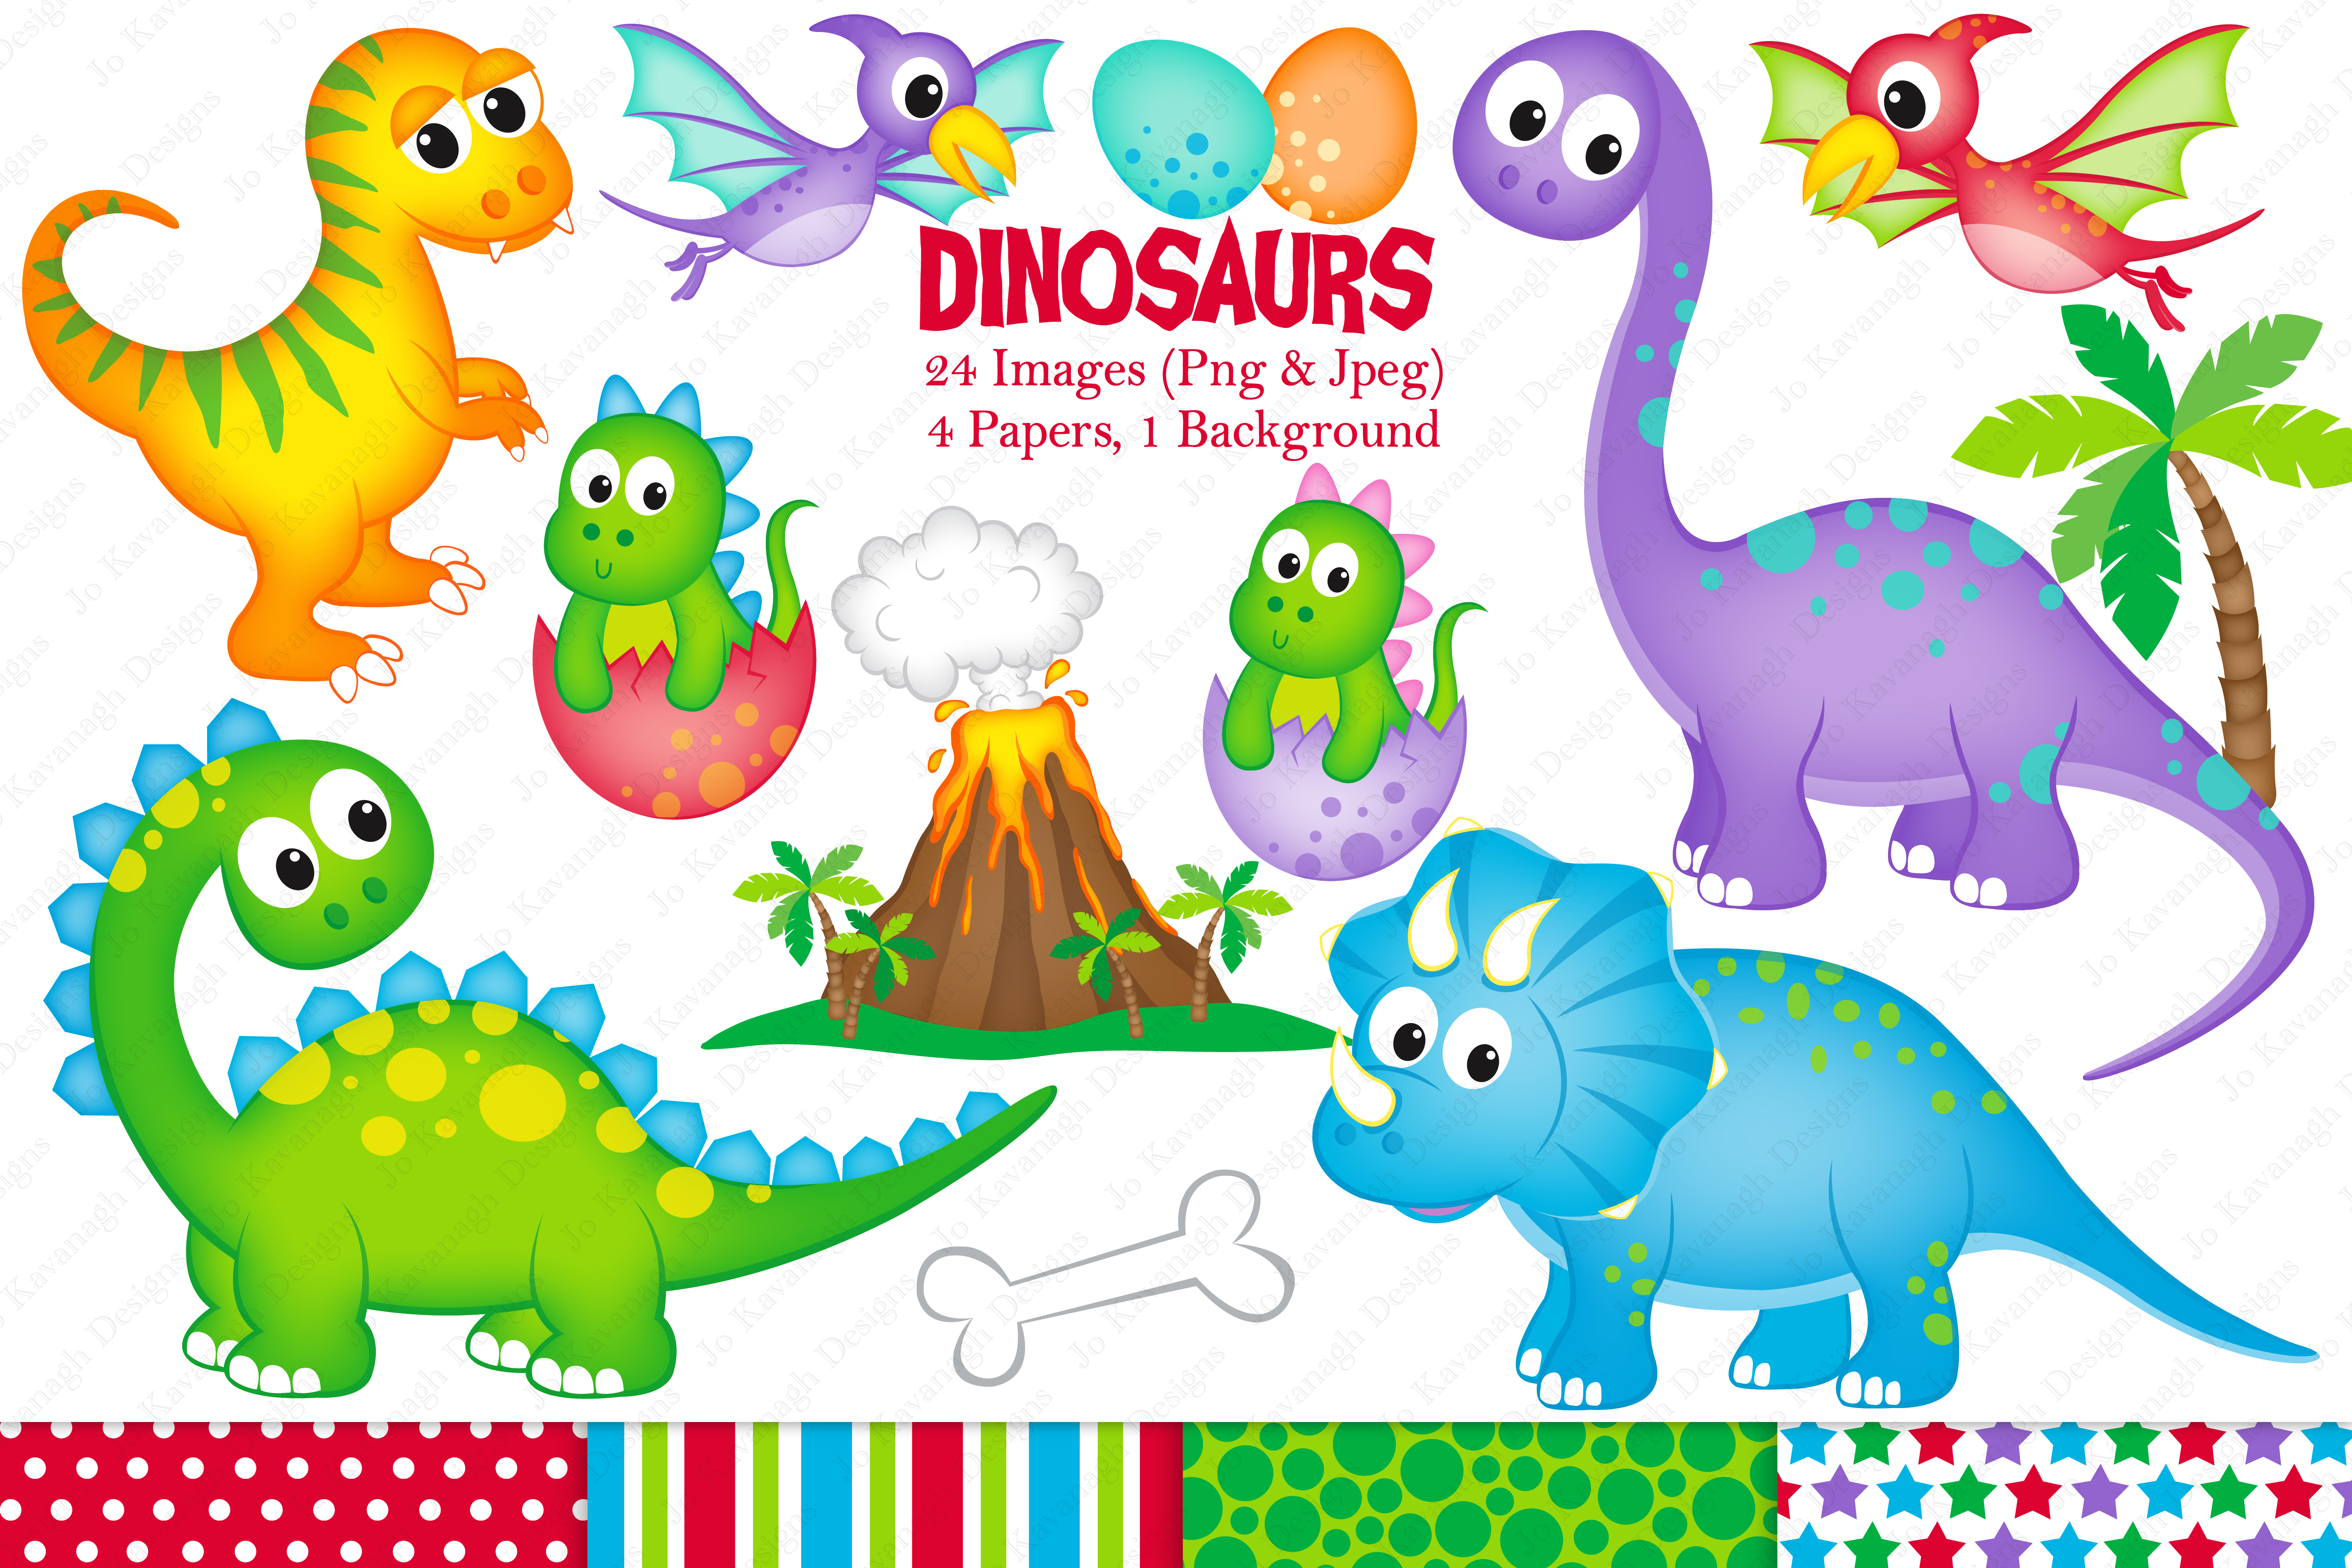 Dinosaurs clipart background. Graphics illustrations din design